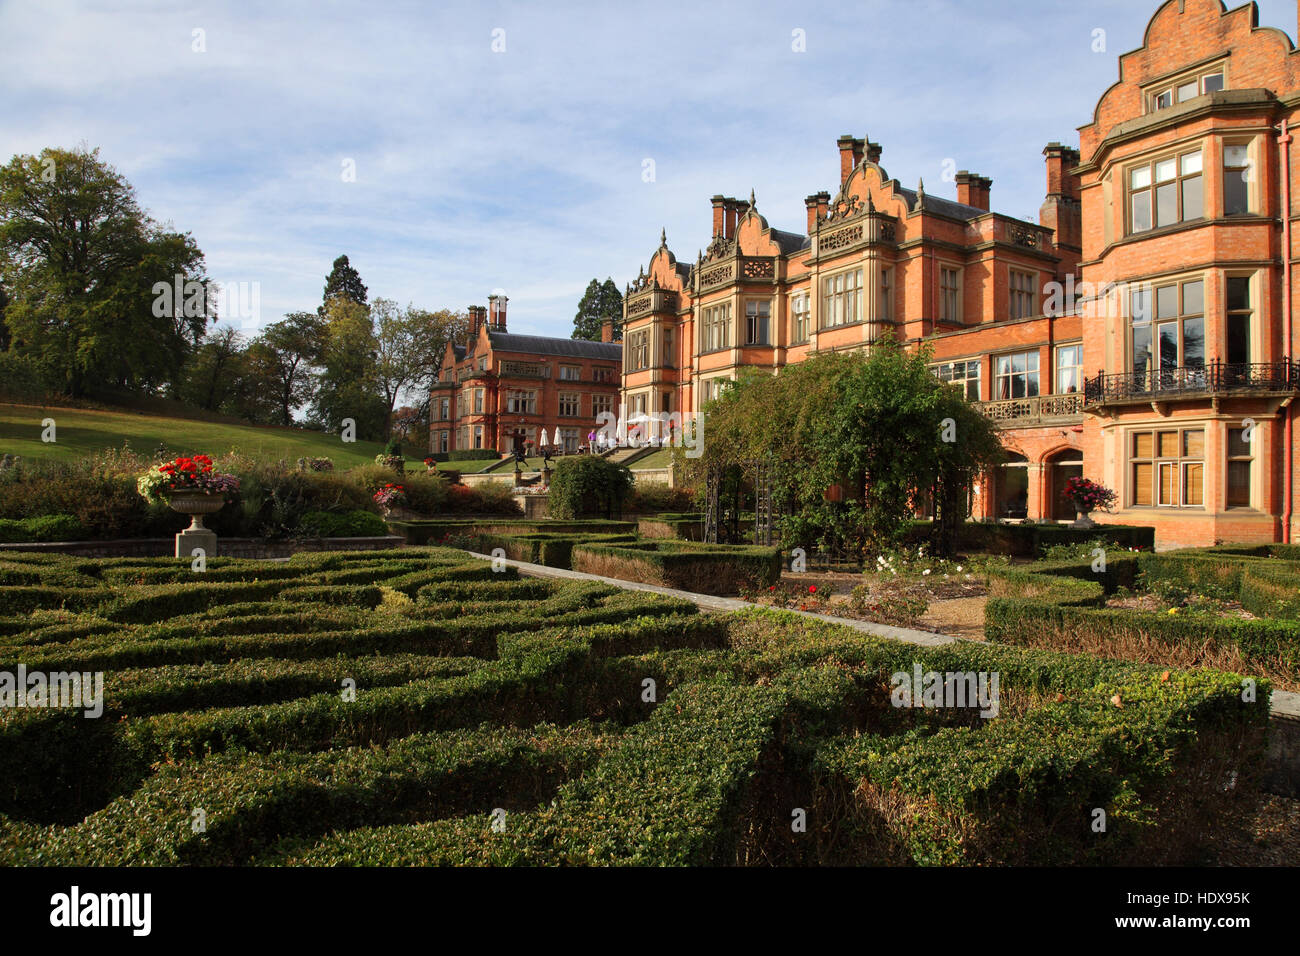 The Welcombe Hotel At Stratford Upon Avon A Popular Wedding Venue And Conference Centre